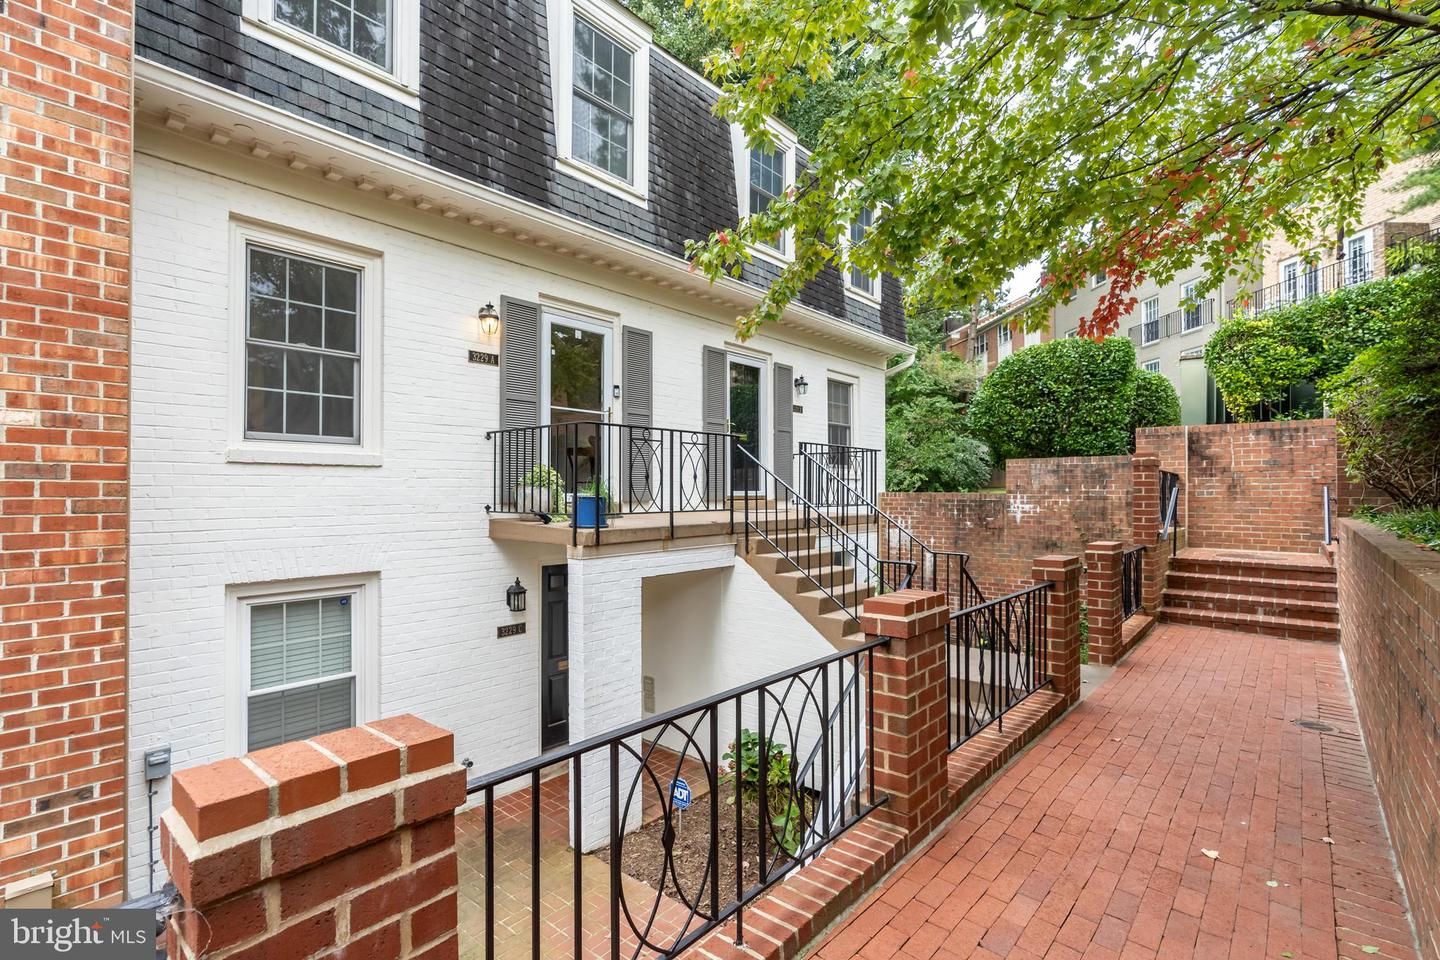 3229 Sutton Place NW #A - Washington, District Of Columbia 20016